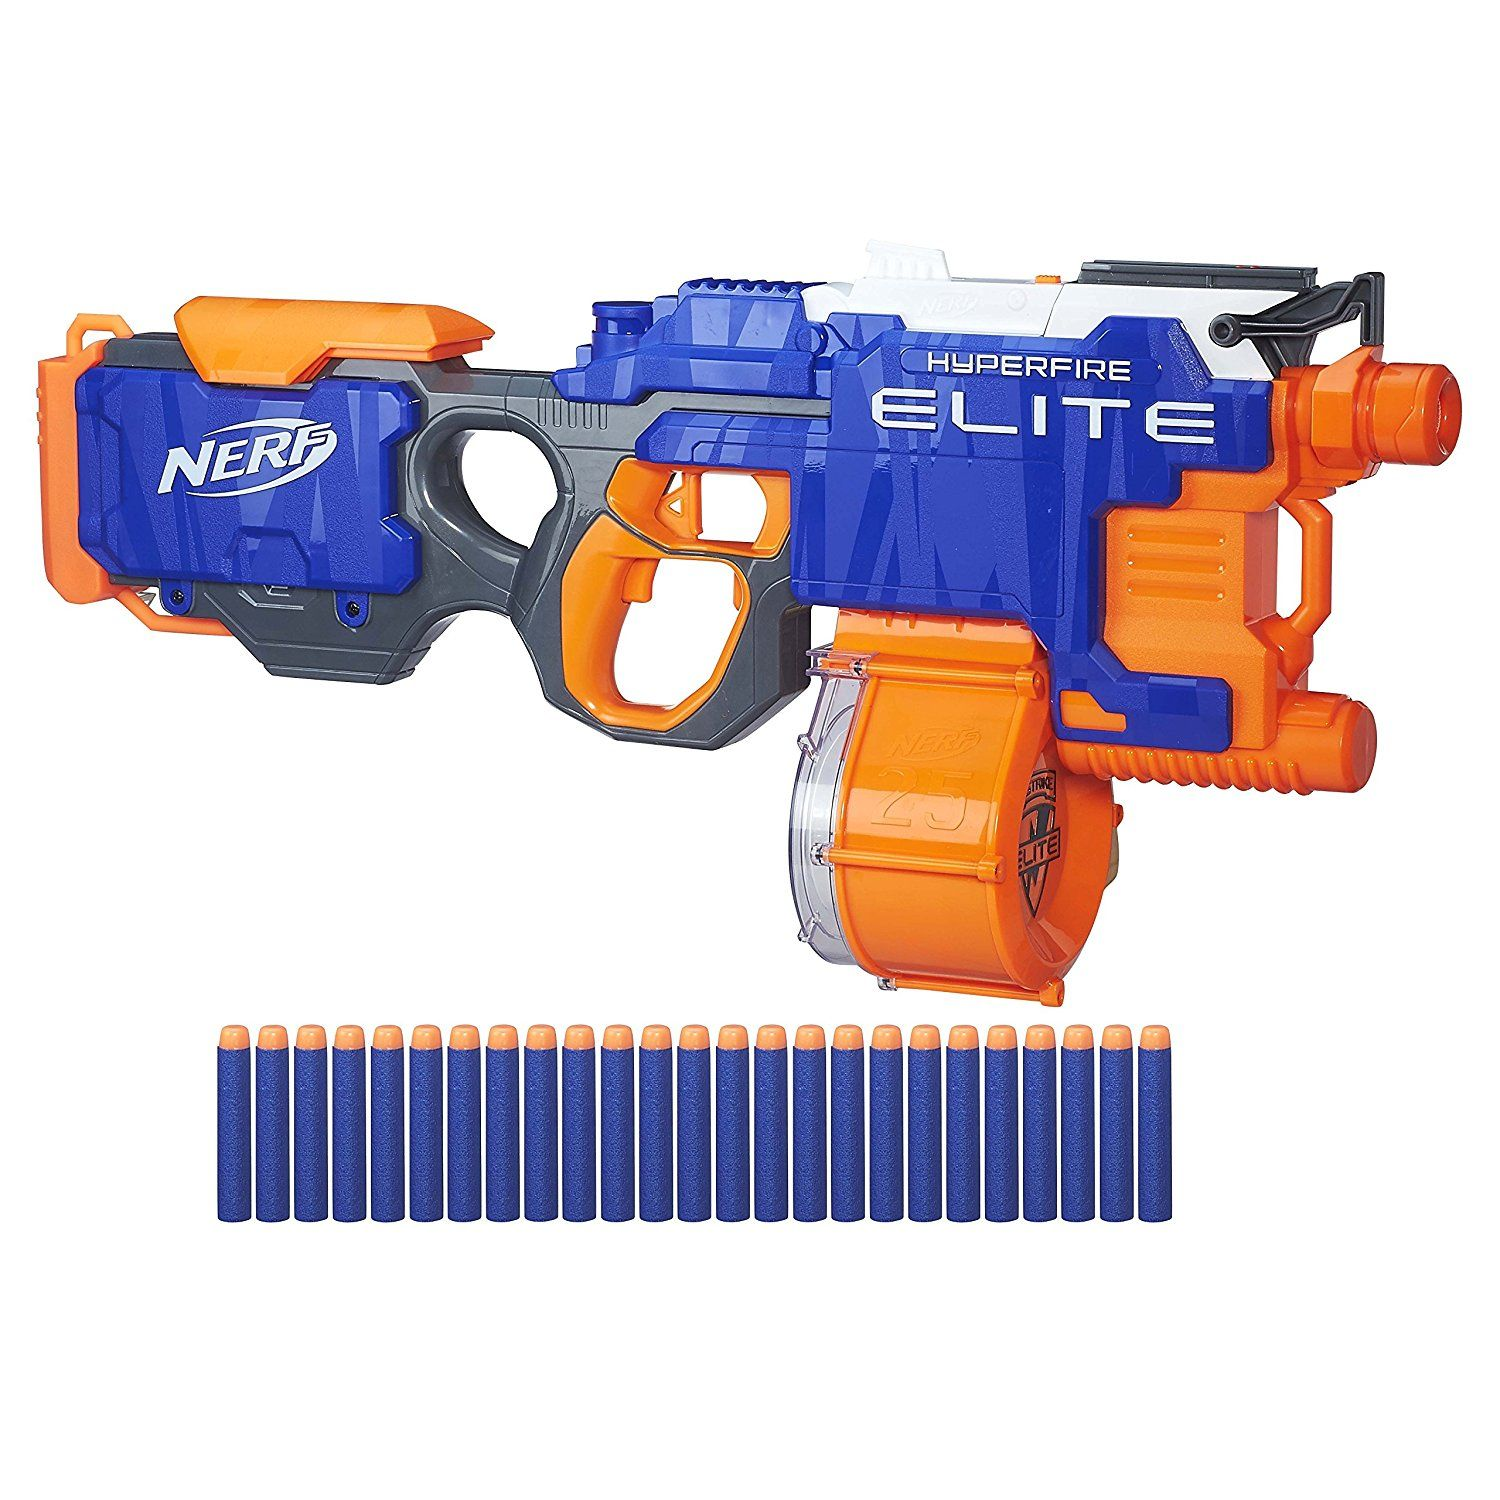 Explore items to the Nerf N Strike Elite HyperFire Blaster Organize & share your favorite things including wish lists with friends